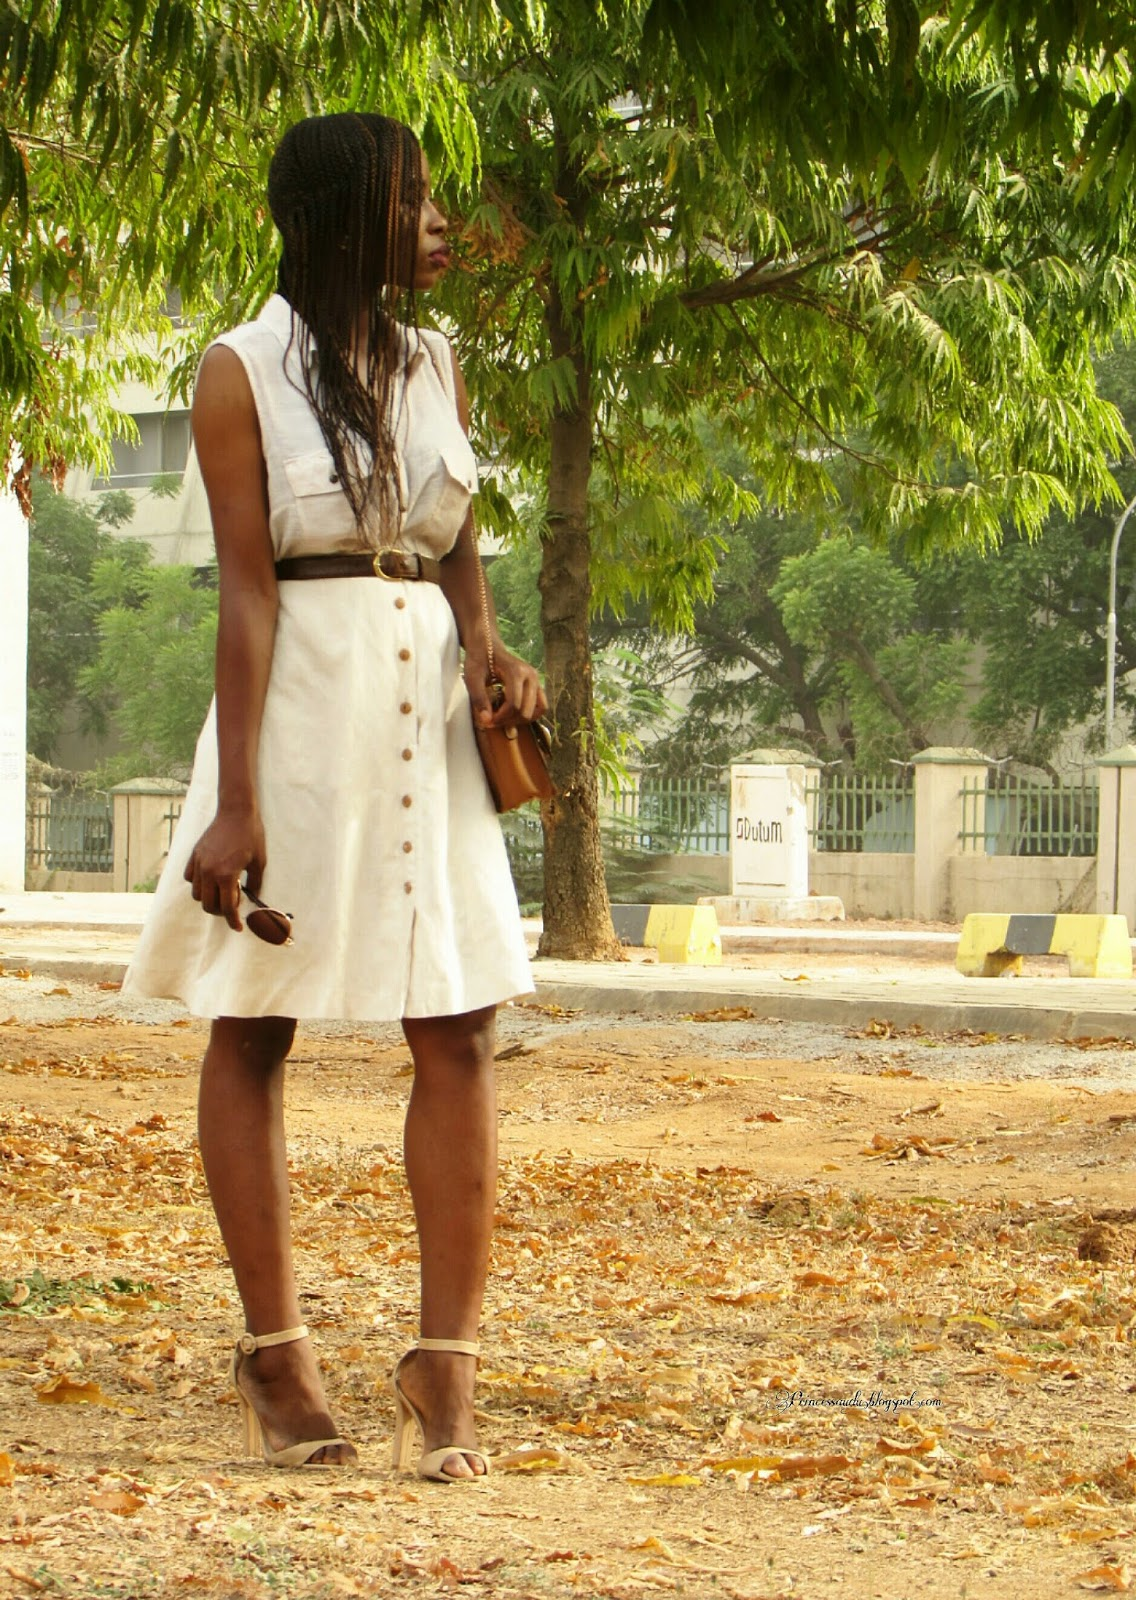 styling neutrals, nude, safari dress, earth tones, khaki